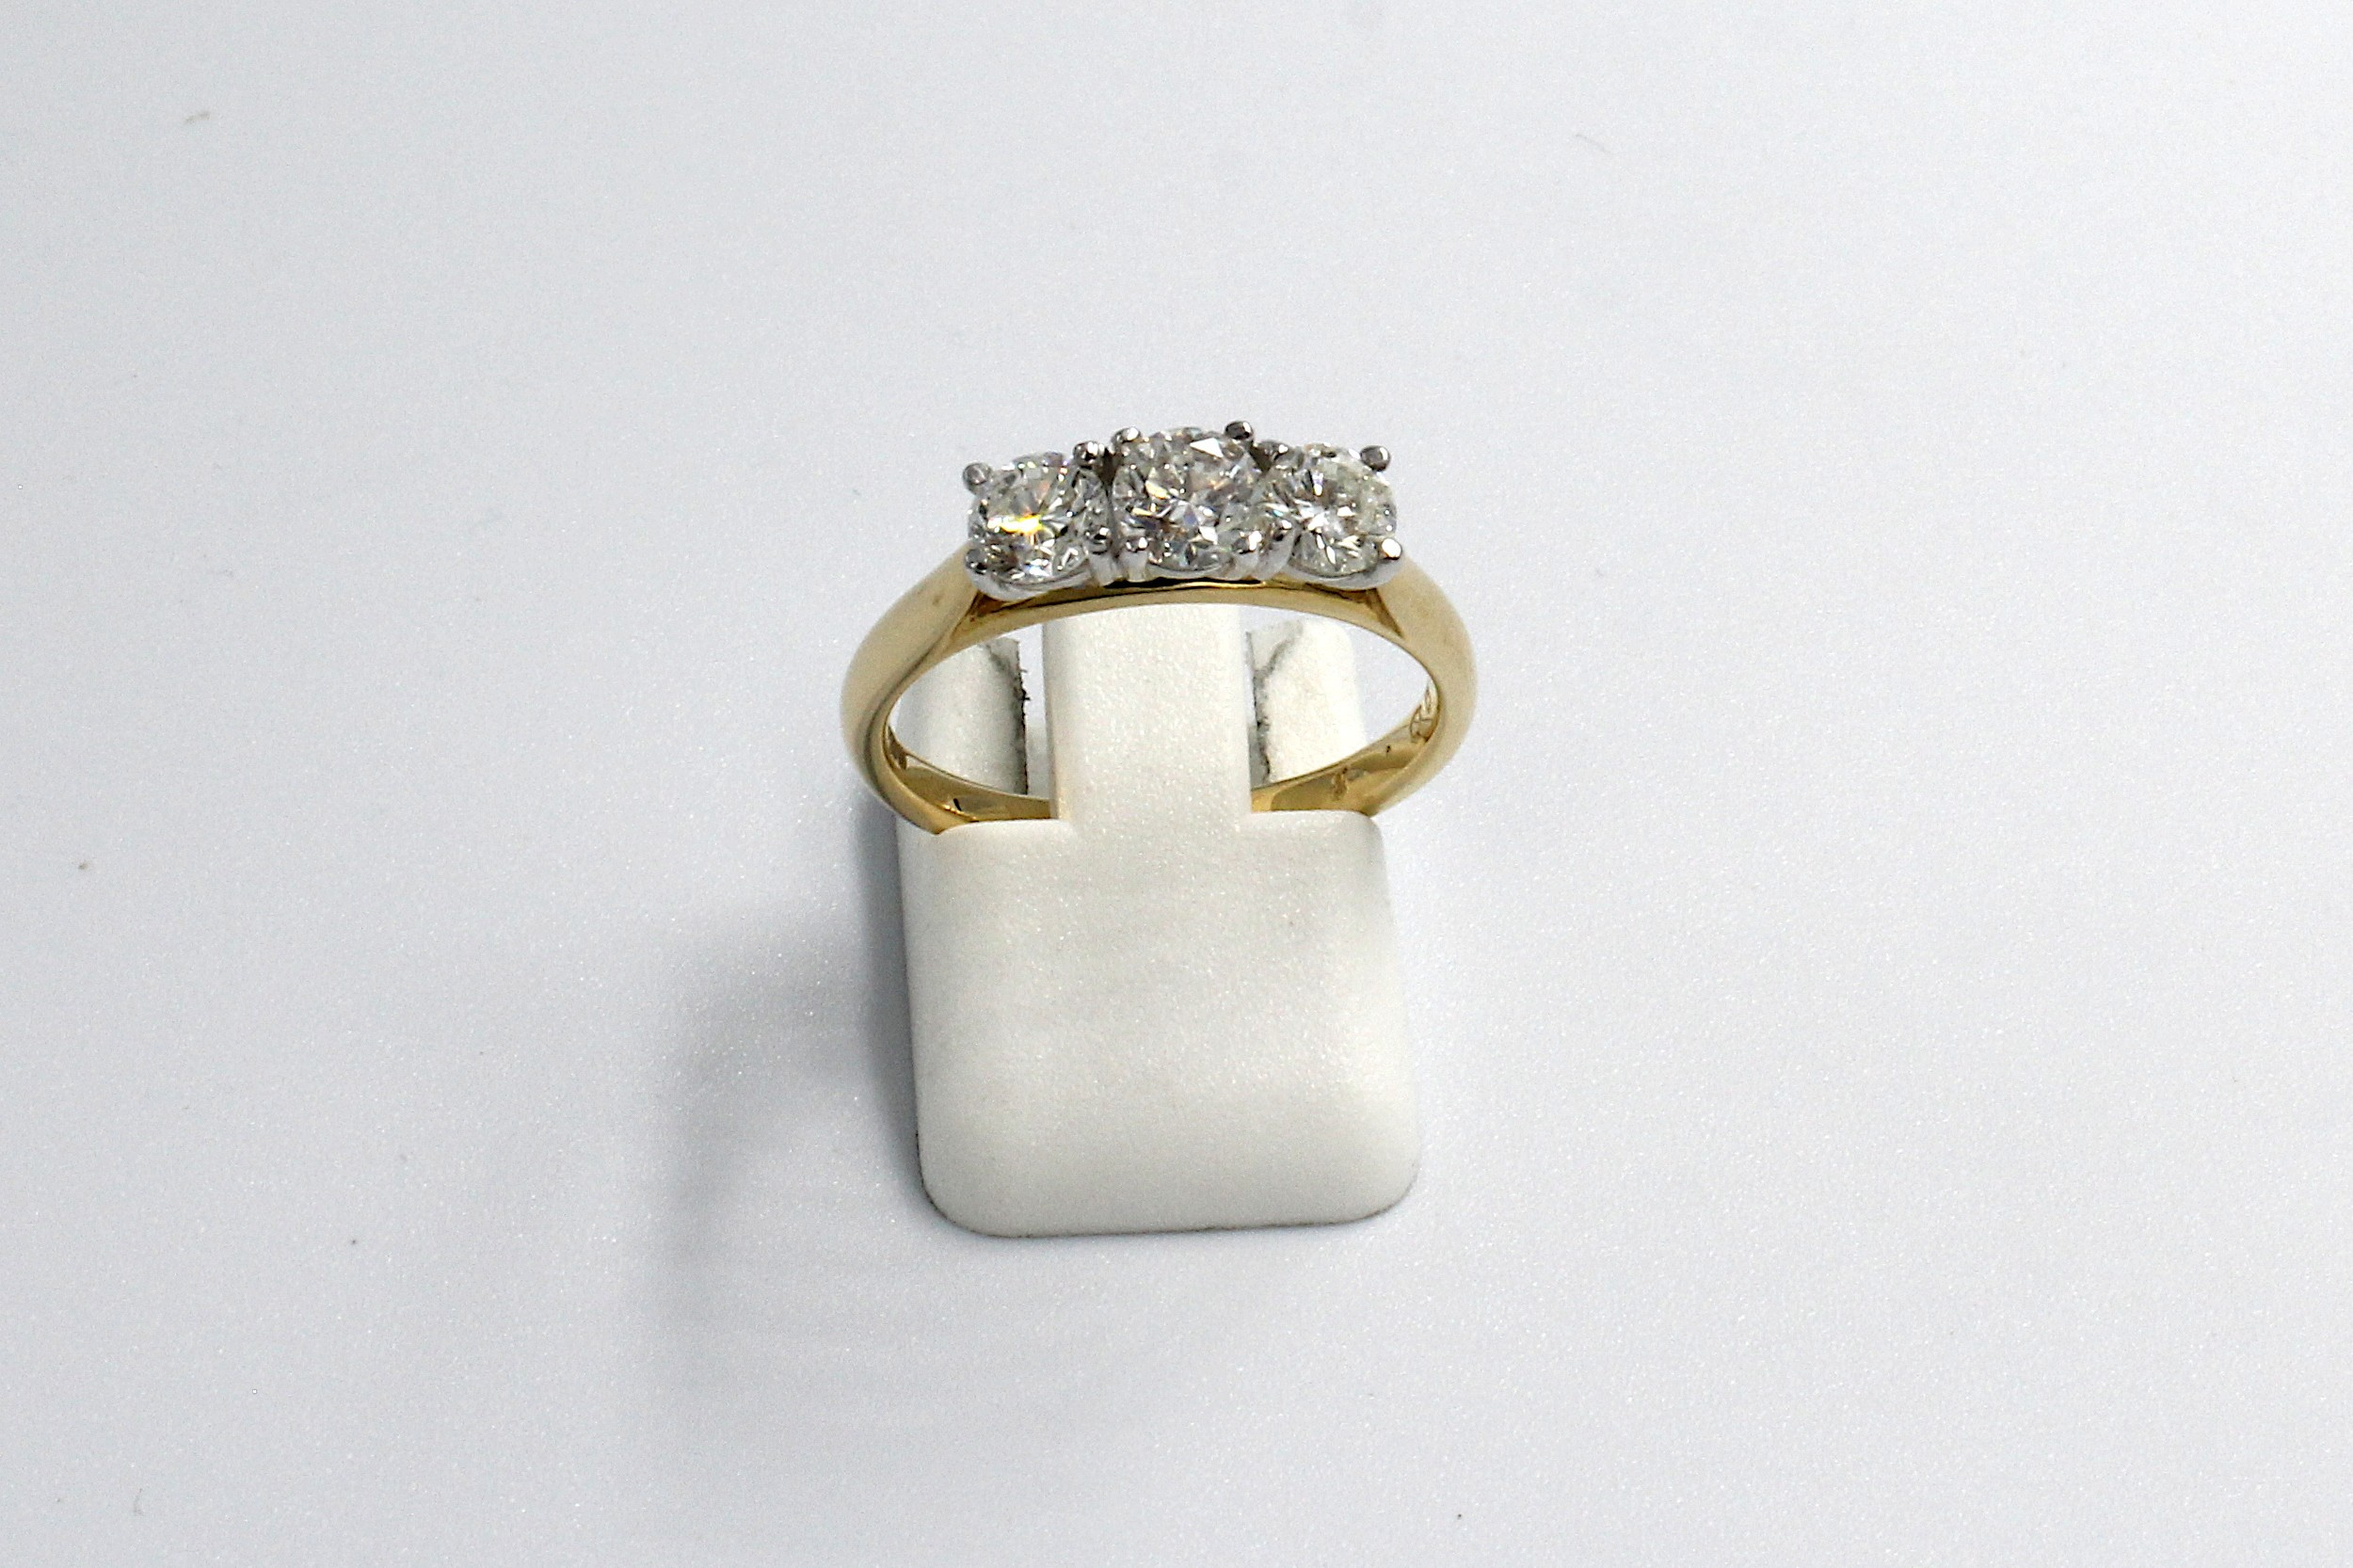 front view of a multi-diamond and gold engagement ring